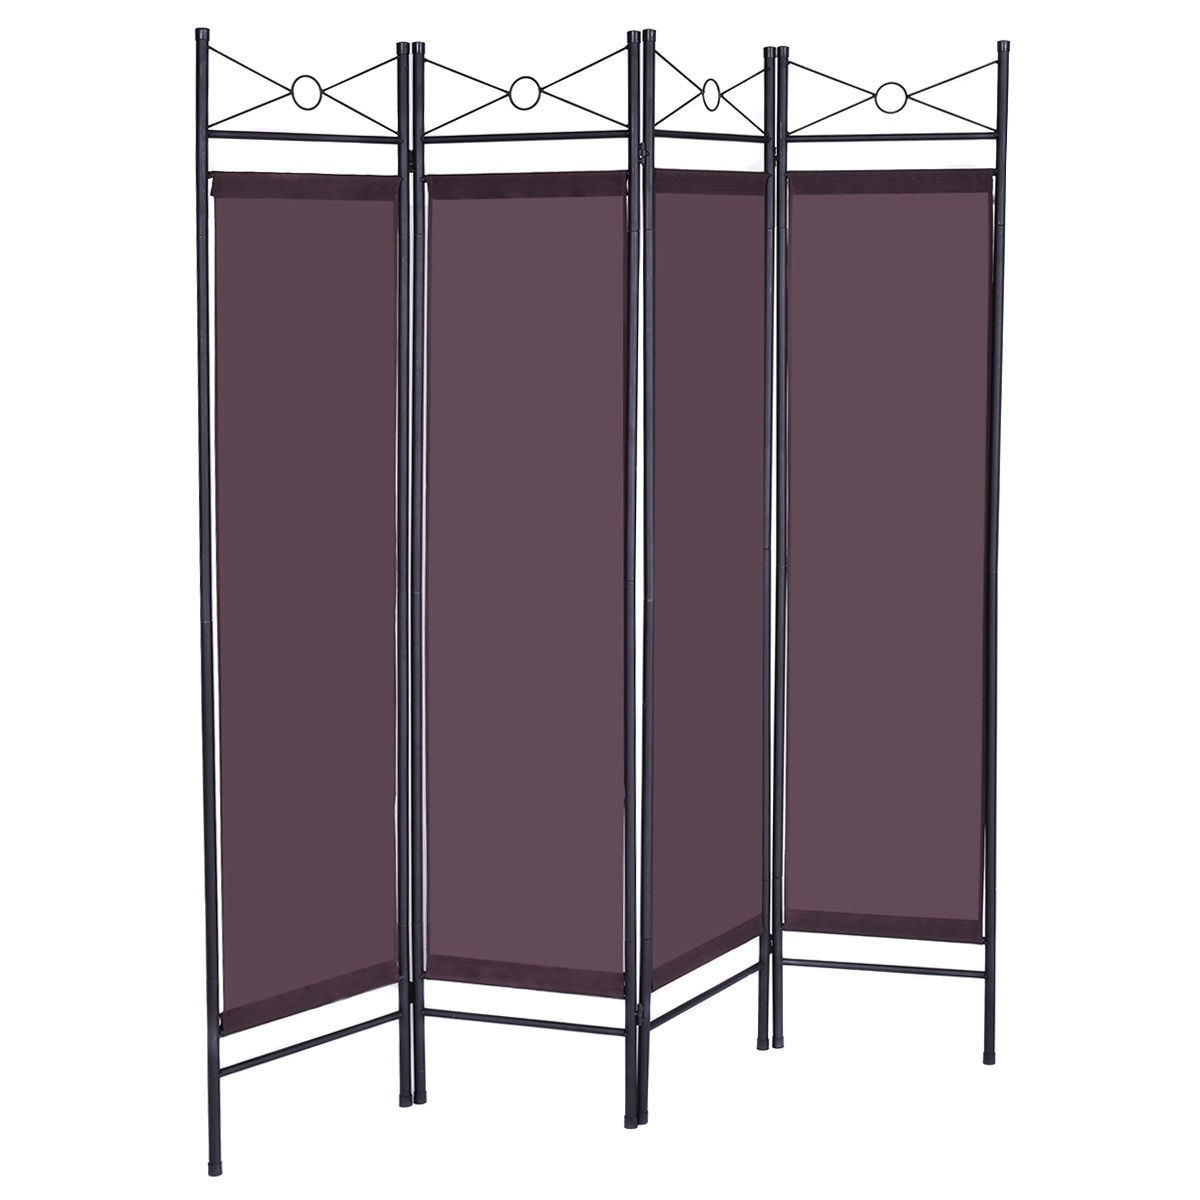 4 panel room divider privacy folding screen home office fabric metal frame brown ebay - Collapsible room divider ...